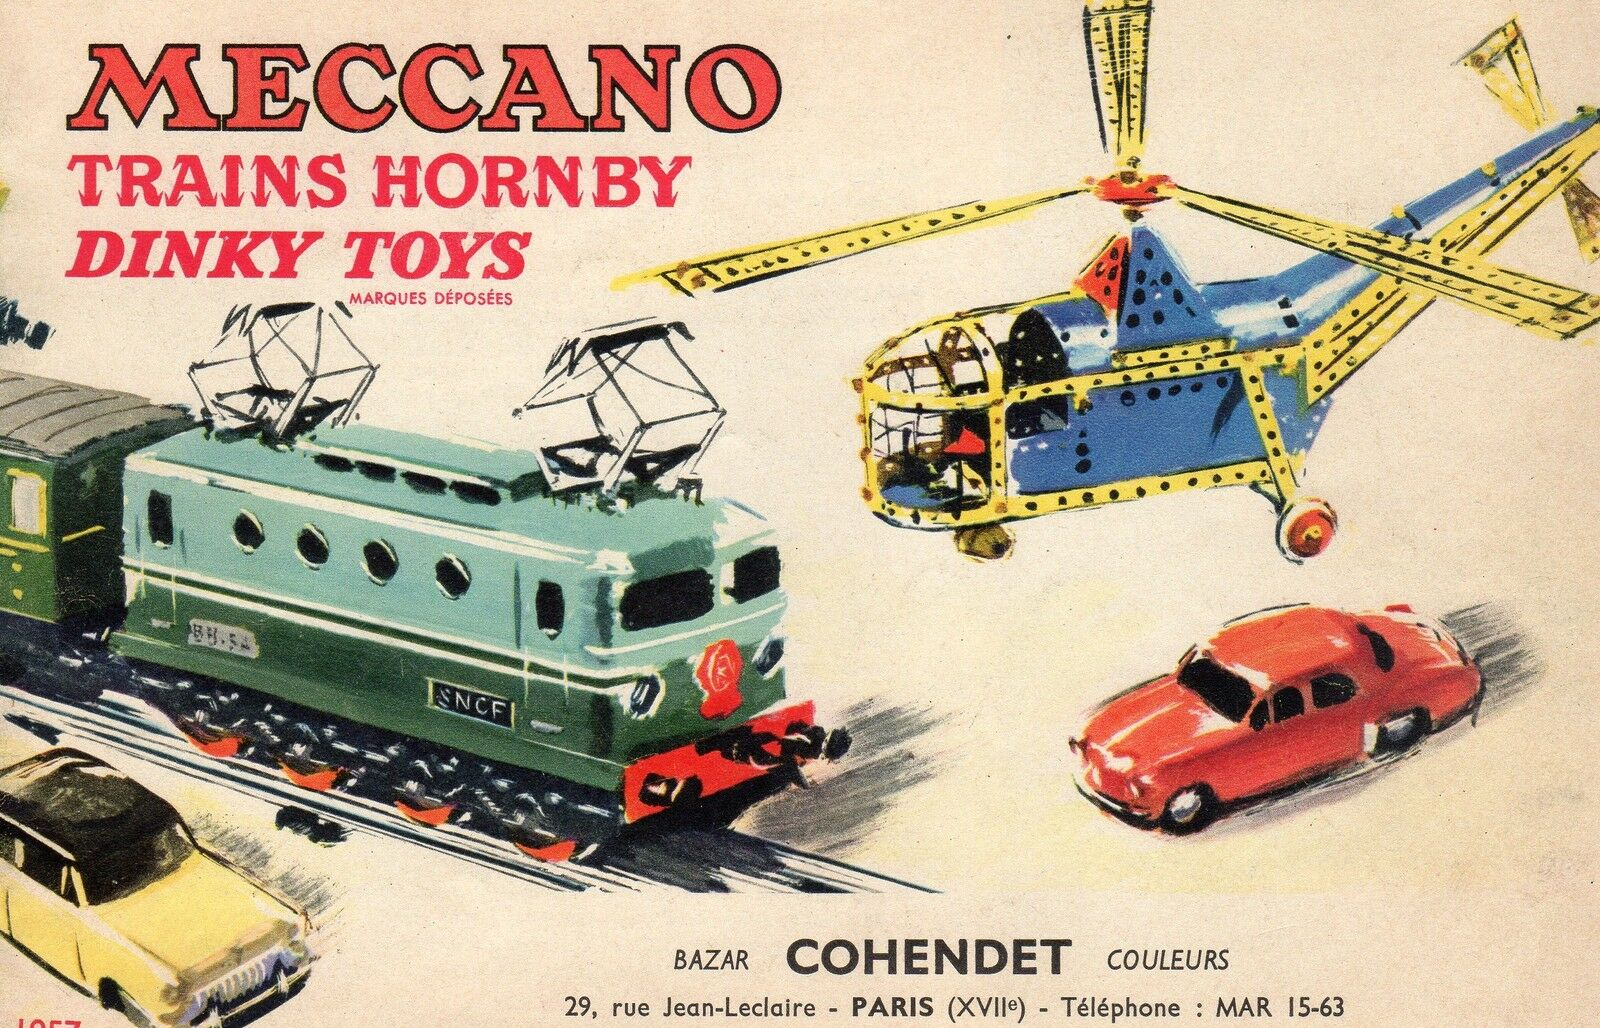 ORIGINAL CATALOGUE 1957 MECCANO TRAINS HORNBY DINKY TOYS 1 43 30 PAGES + RATES